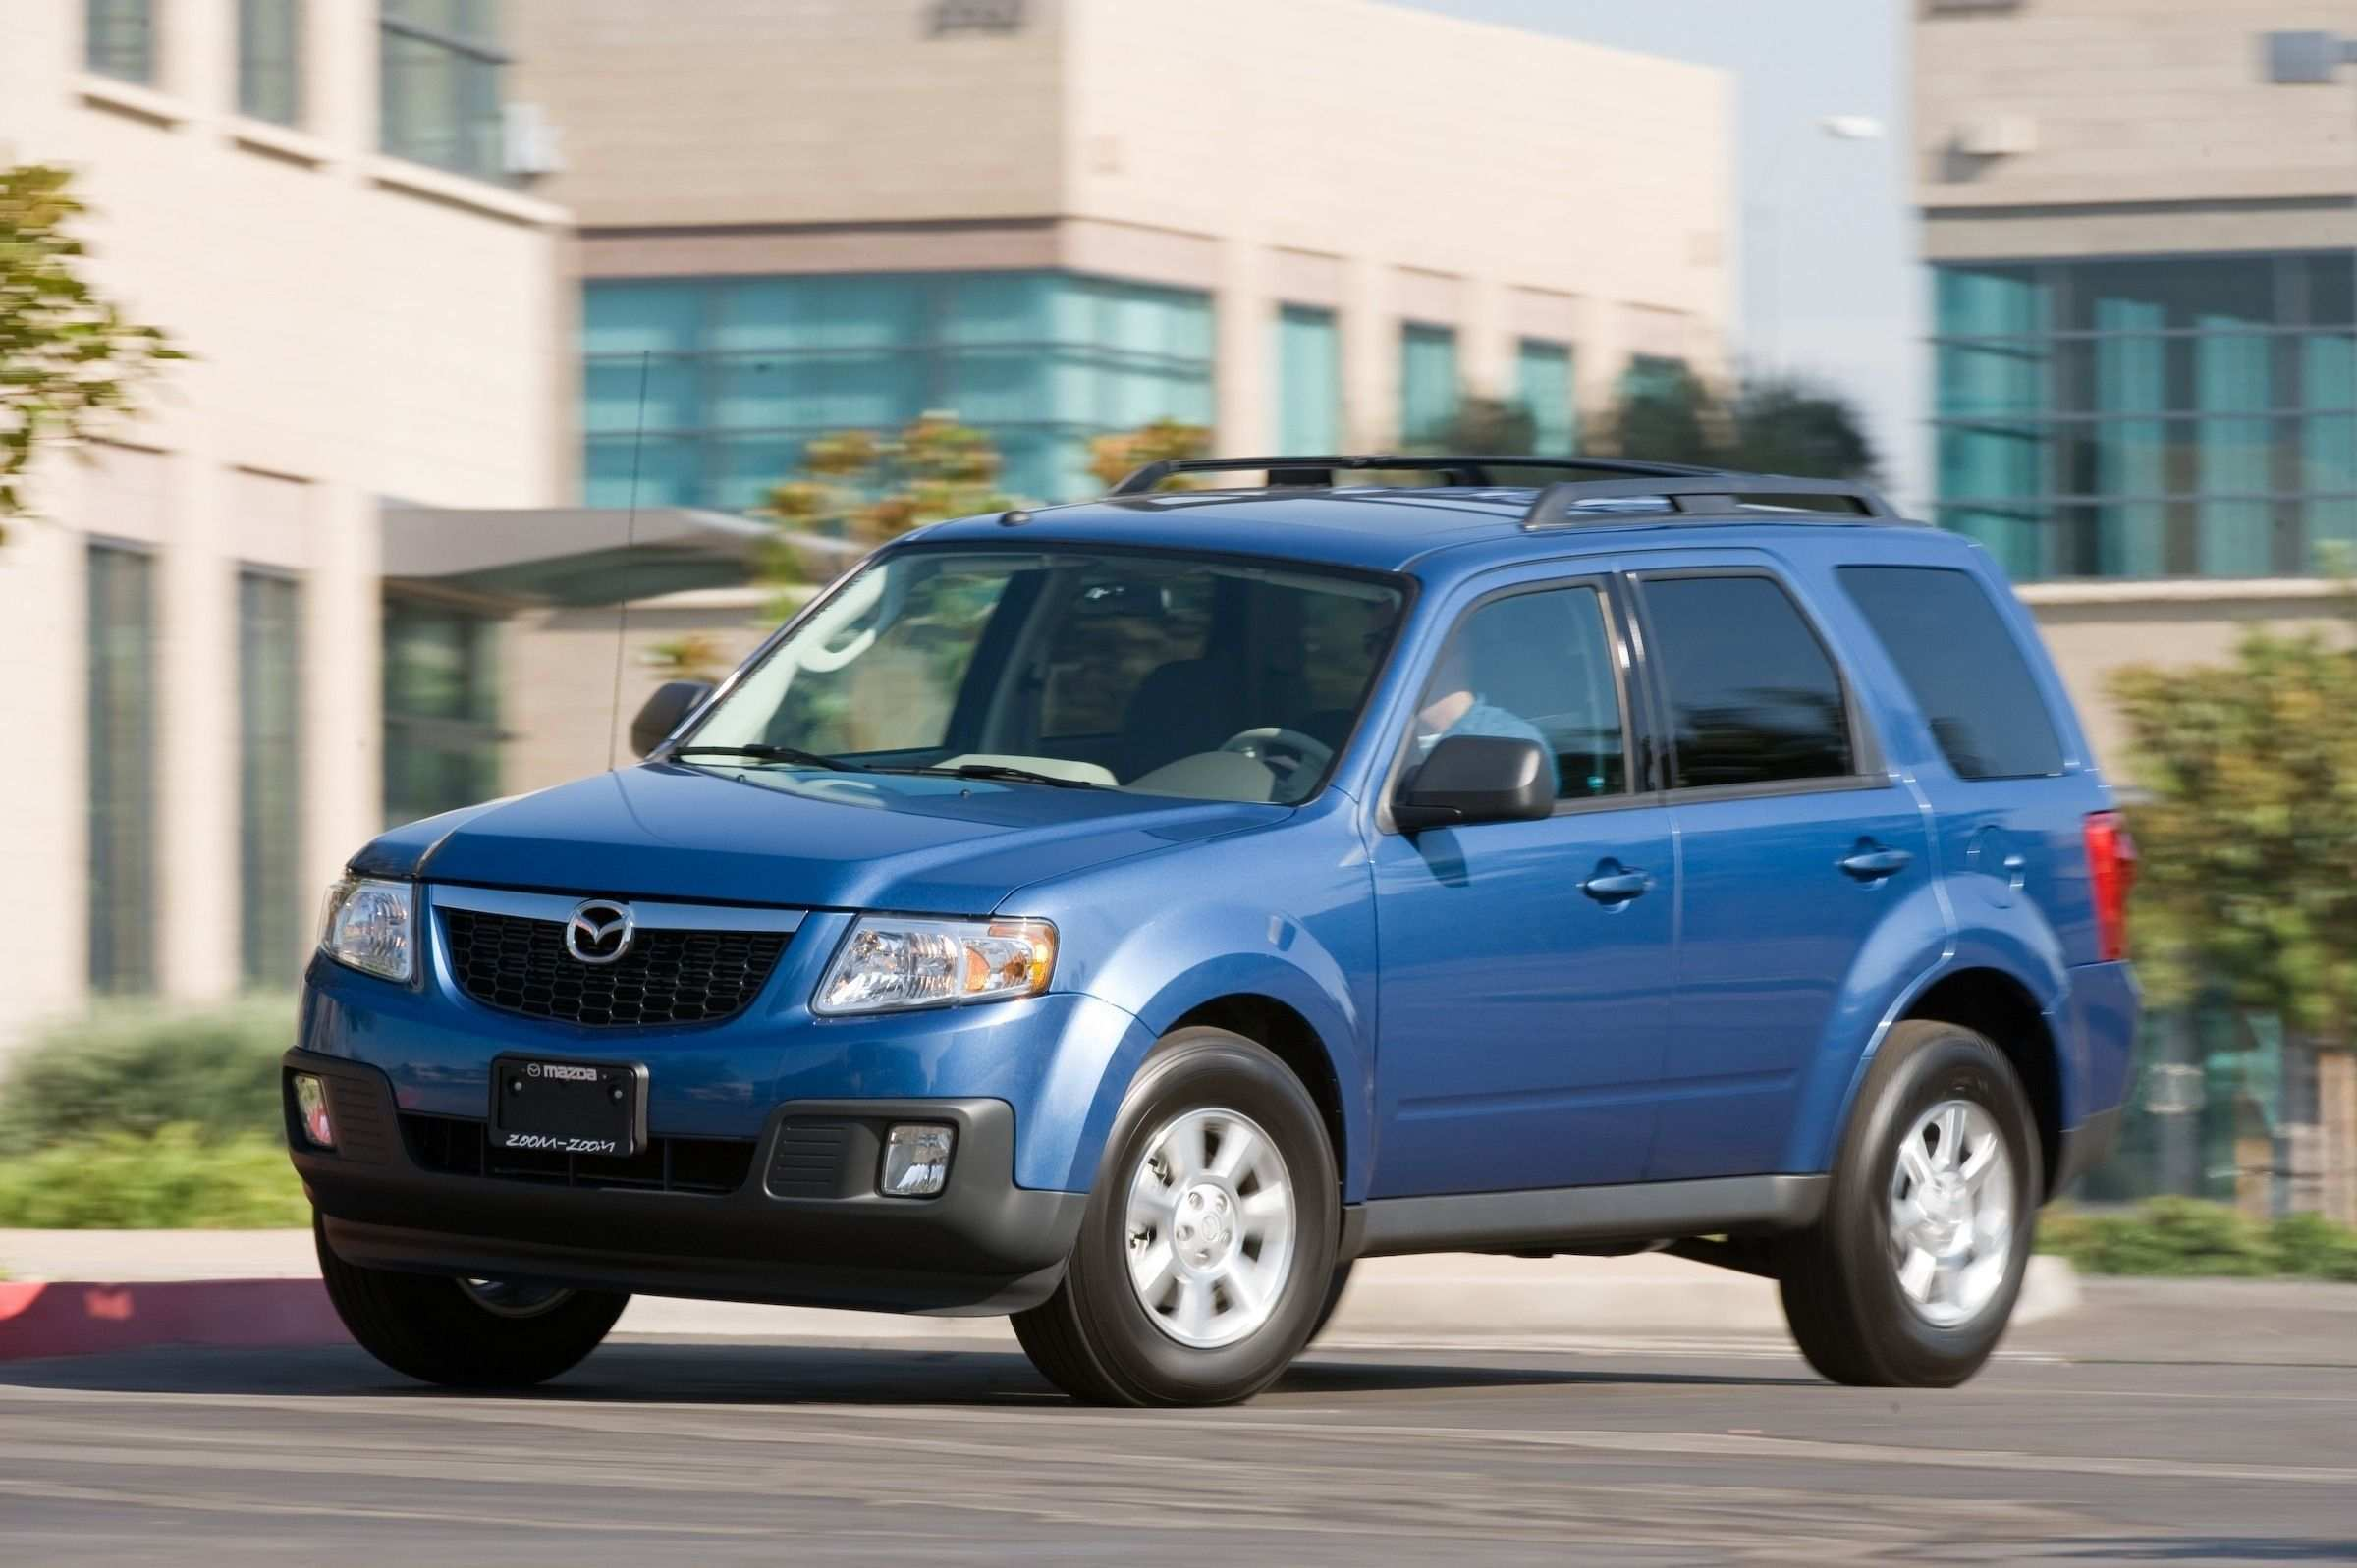 33 New 2019 Mazda Tribute Release Date And Concept